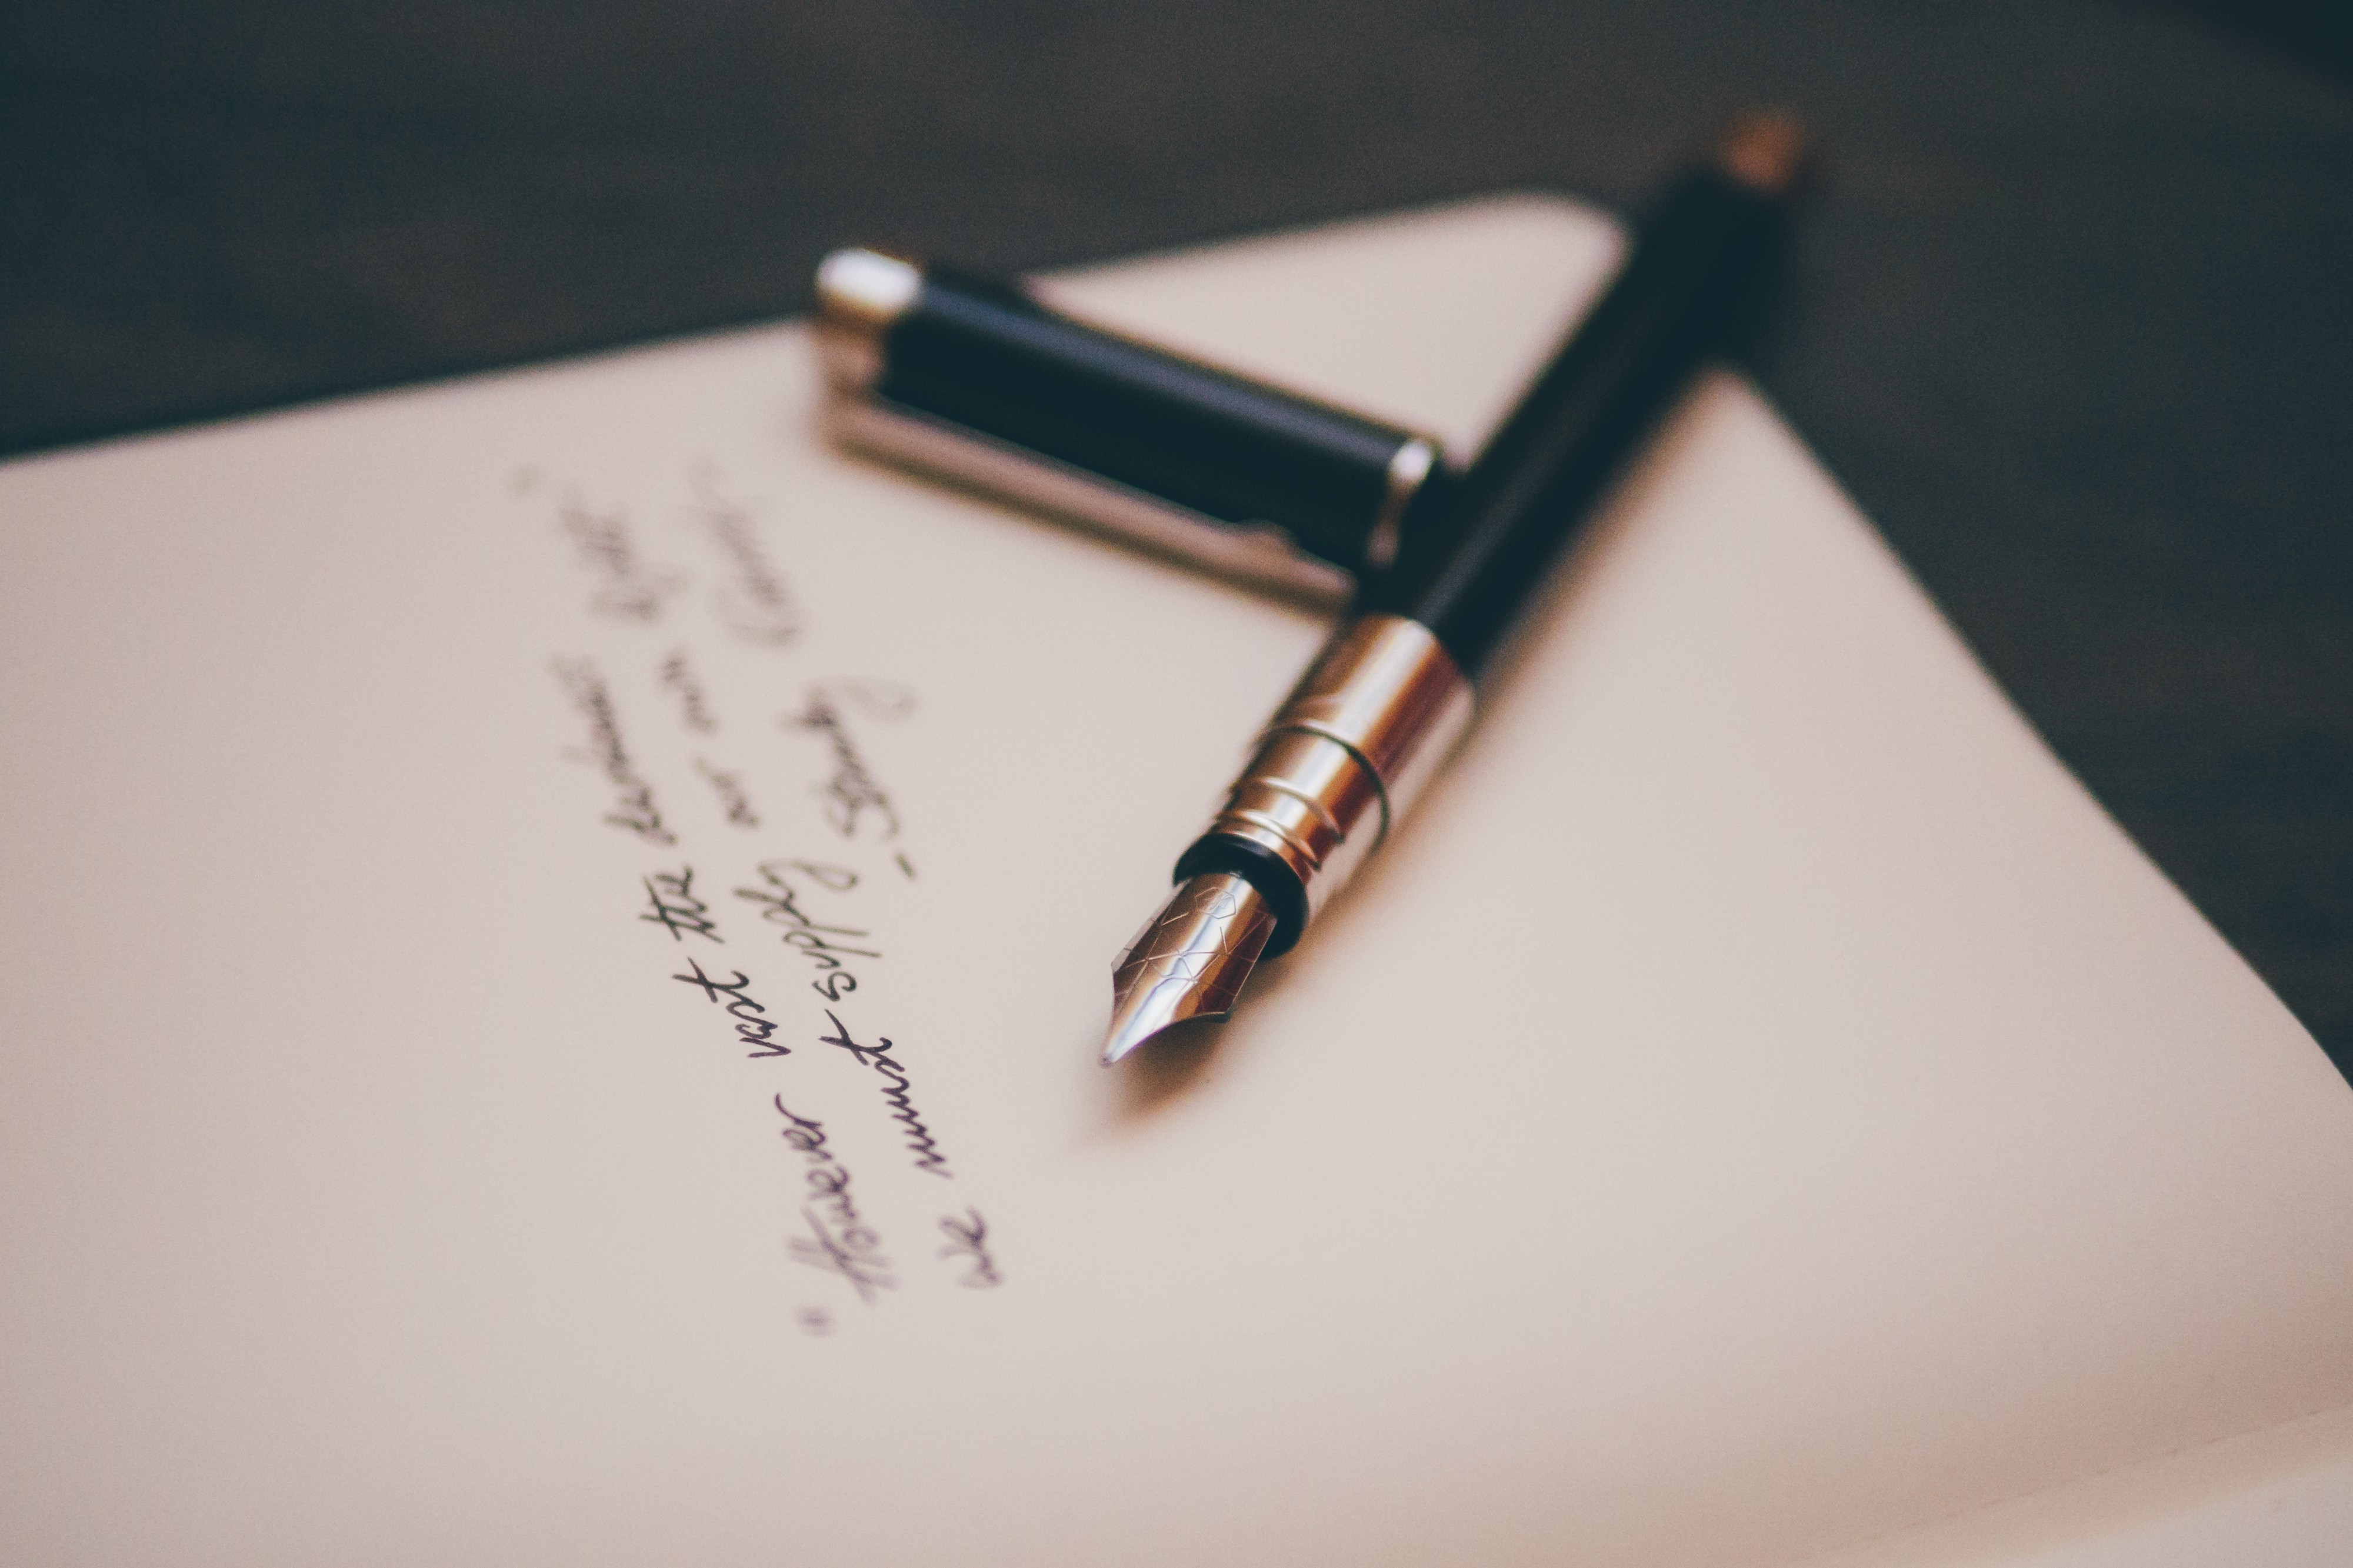 Writing the draft using pen and paper